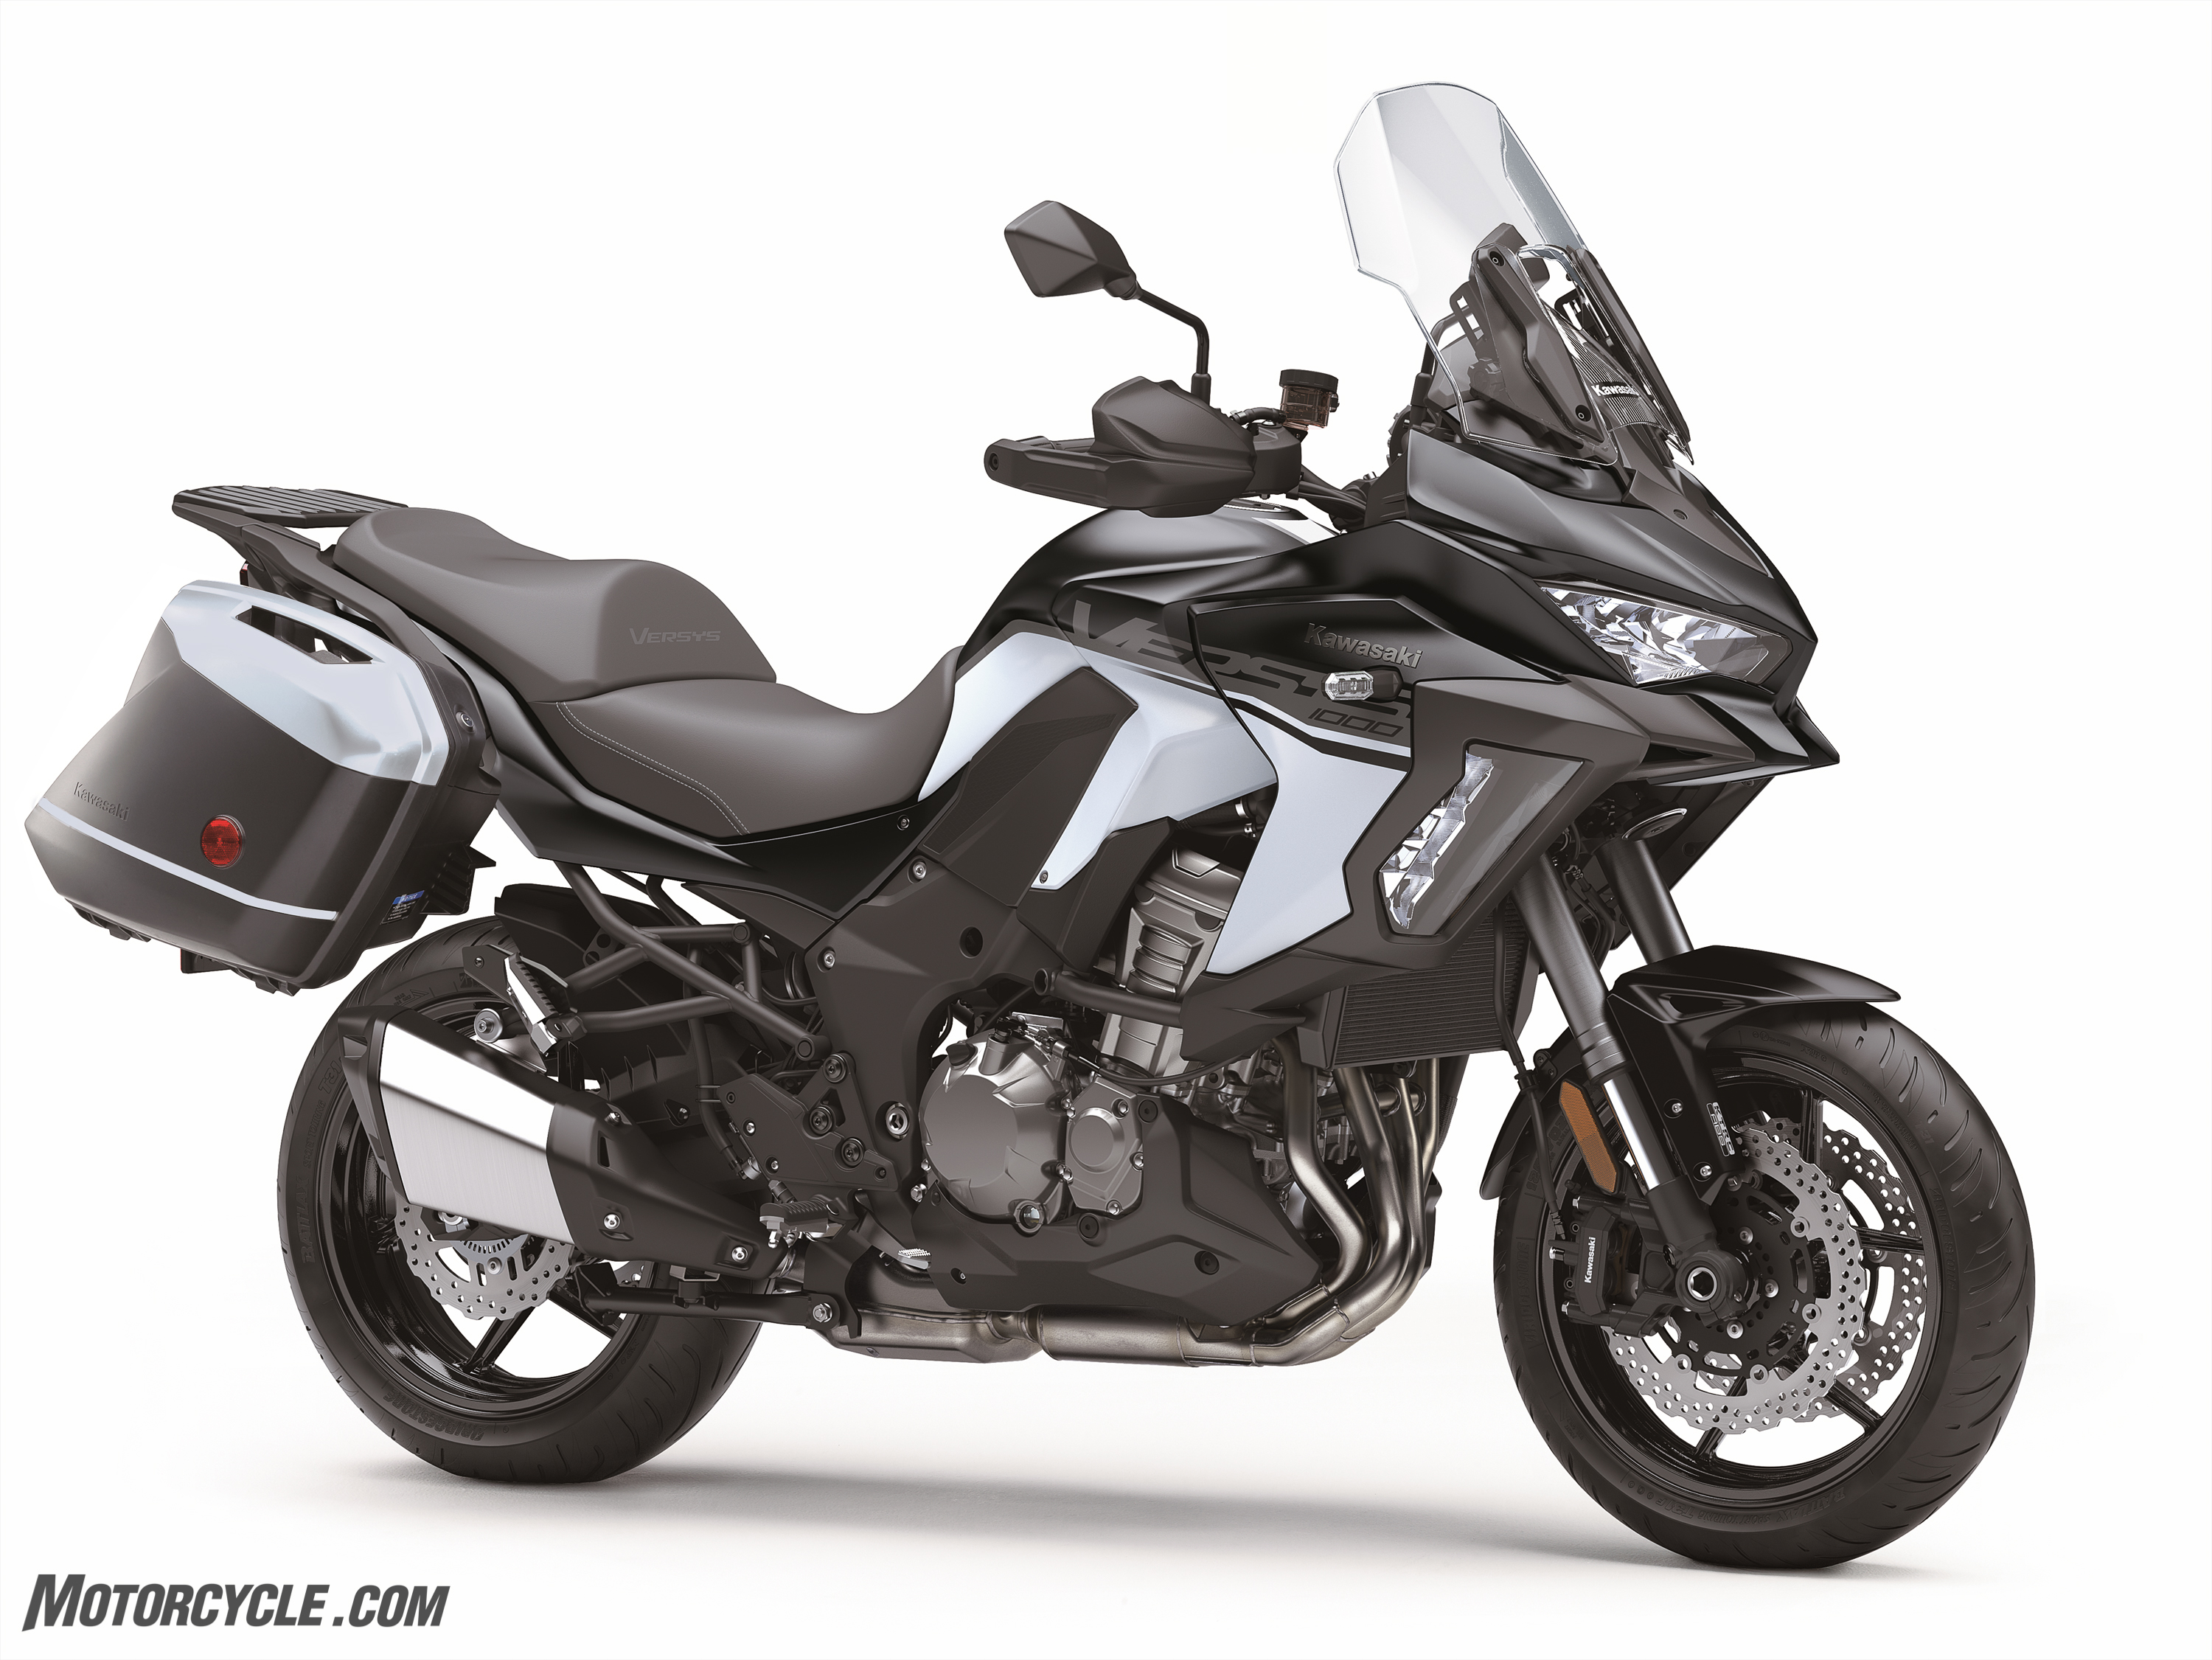 2019 Kawasaki Versys 1000 SE LT+ First Look - Motorcycle com